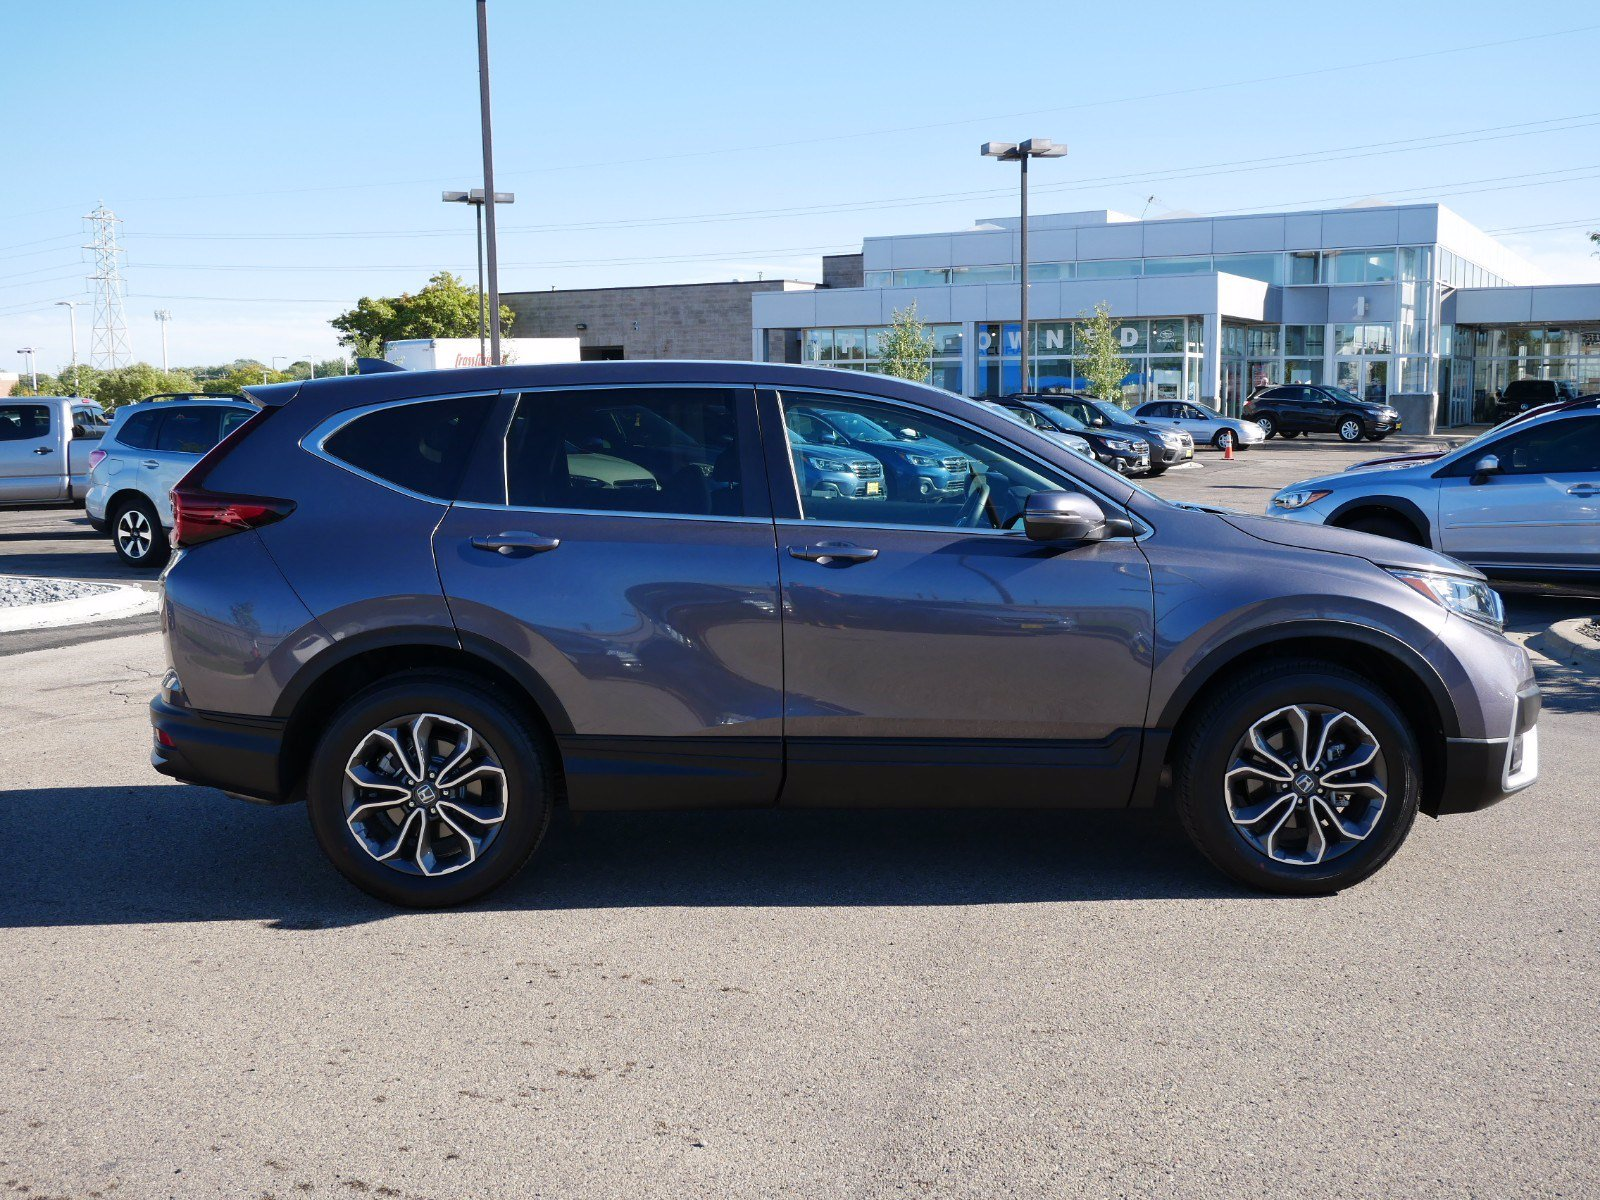 Used 2020 Honda CR-V EX-L with VIN 2HKRW2H89LH700814 for sale in Bloomington, Minnesota